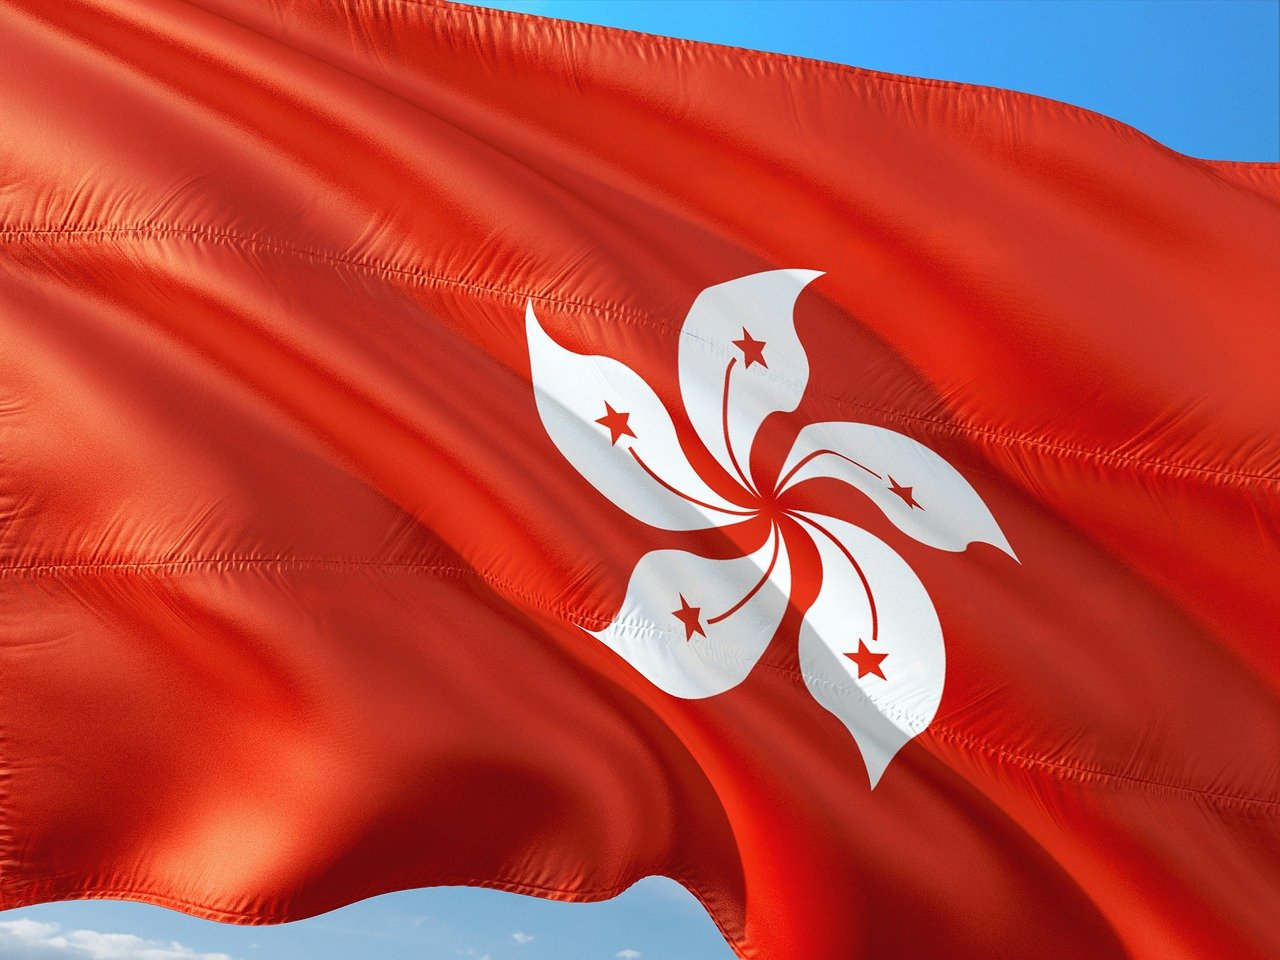 Hong Kong executive proposes restrictive amendments to voting laws